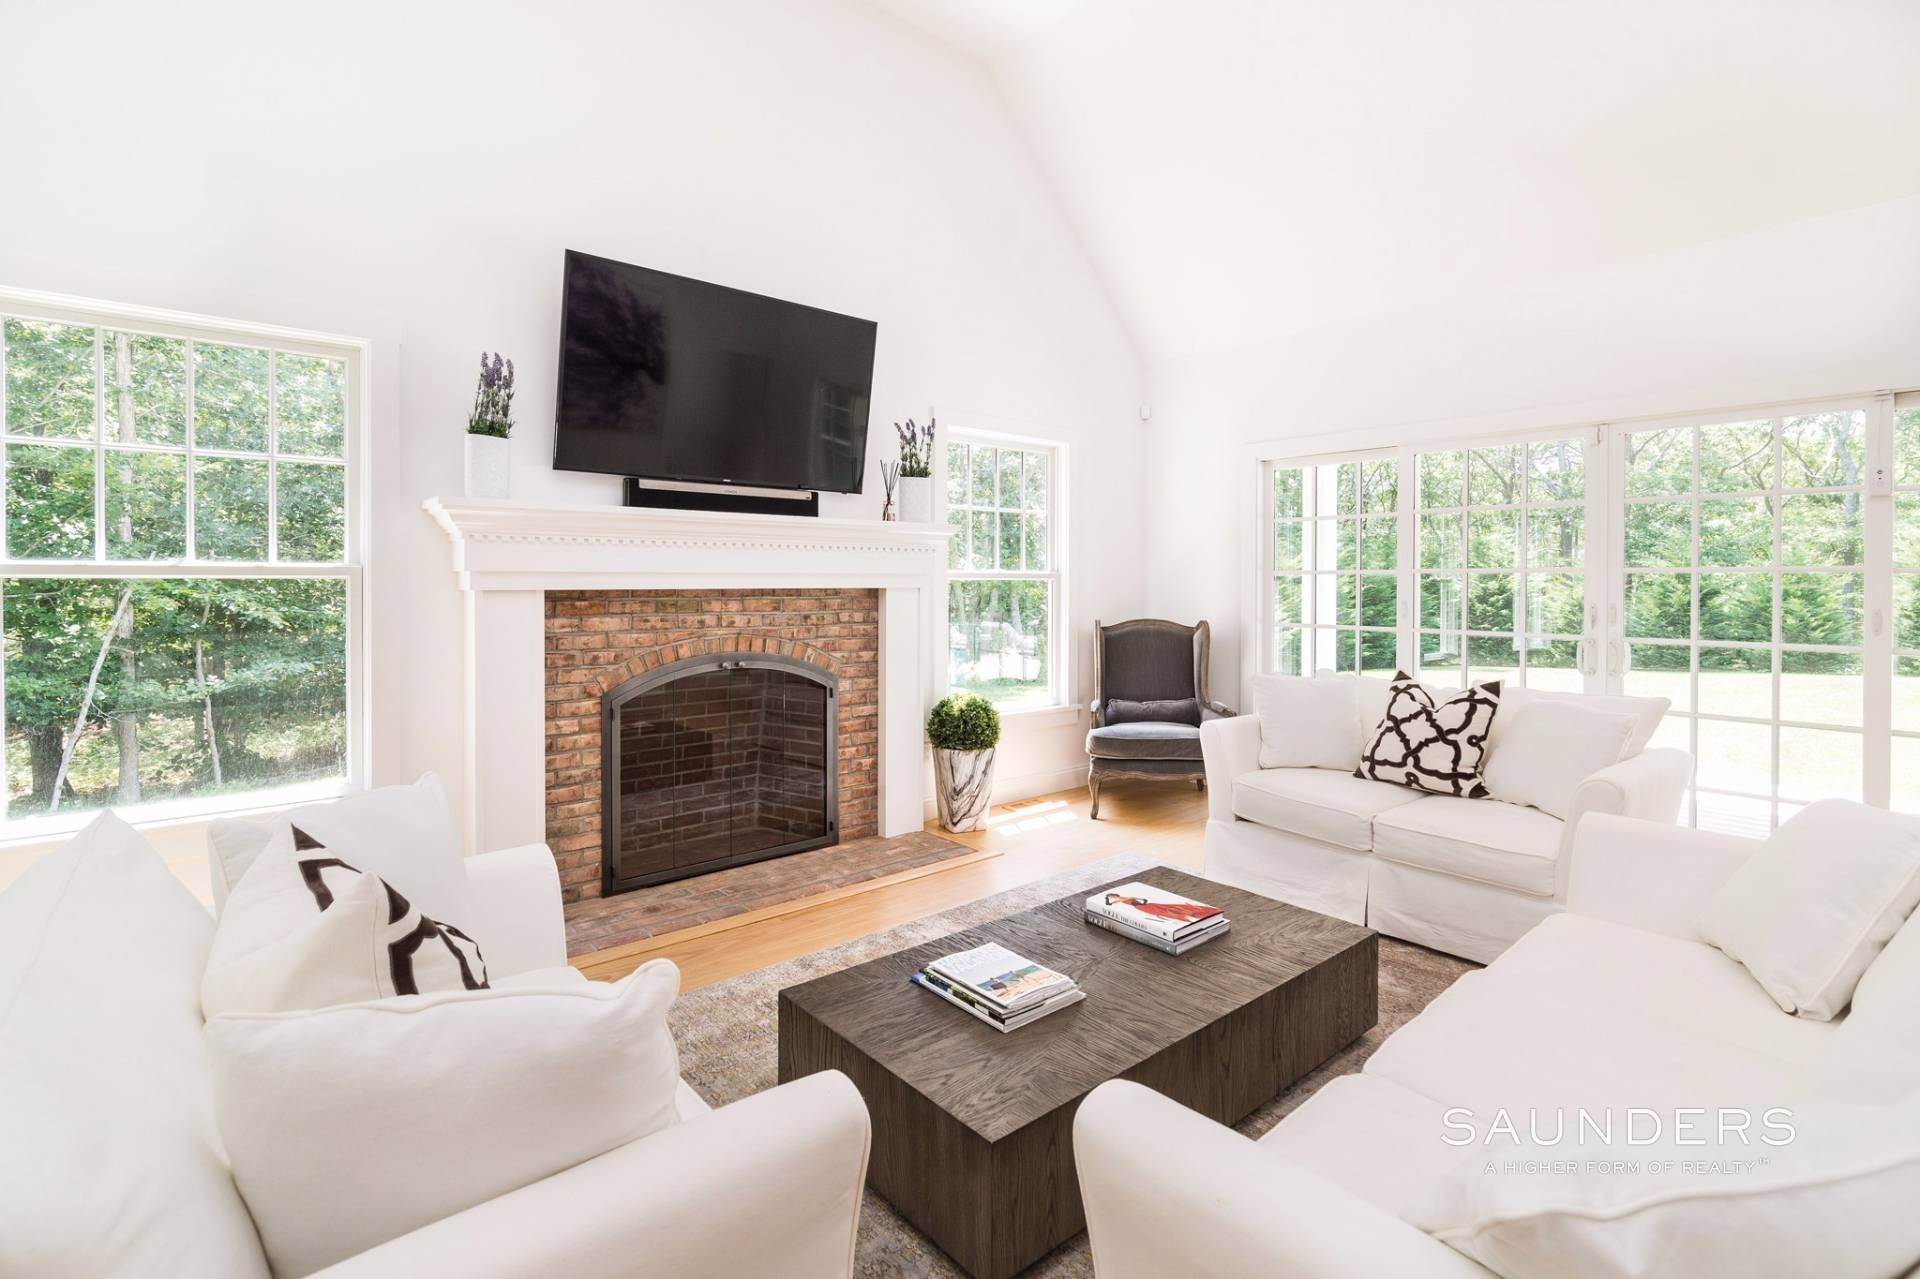 6. Single Family Homes for Sale at Pristine Traditional Home With Modern Amenities 11 Birdie Lane, East Hampton, East Hampton Town, NY 11937